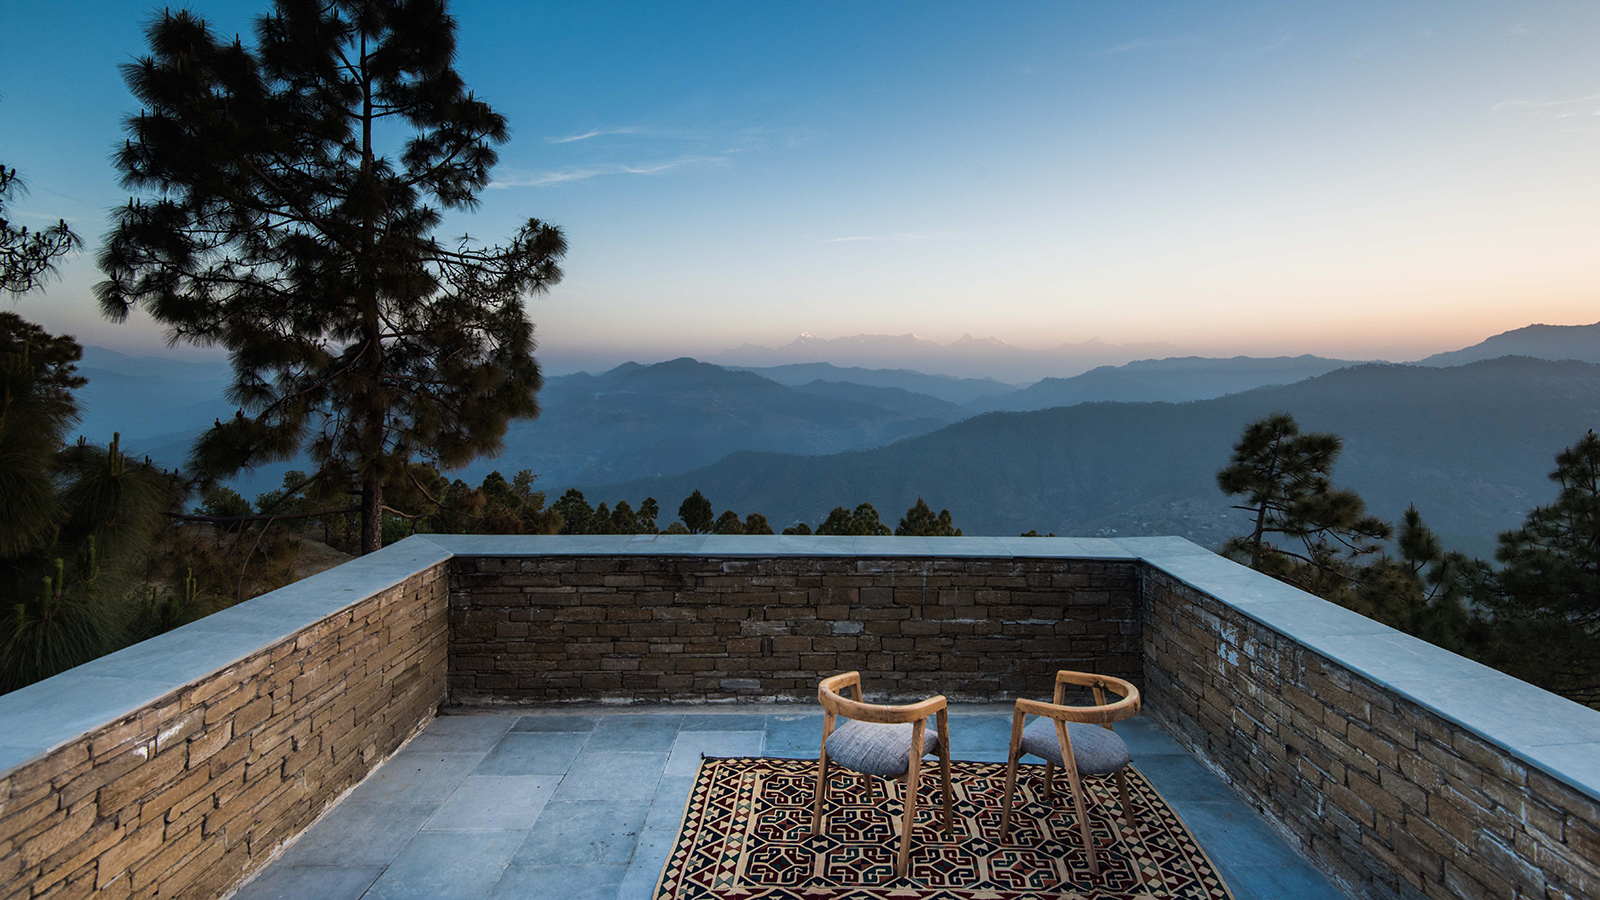 The Kumaon hotel in the Himalayas